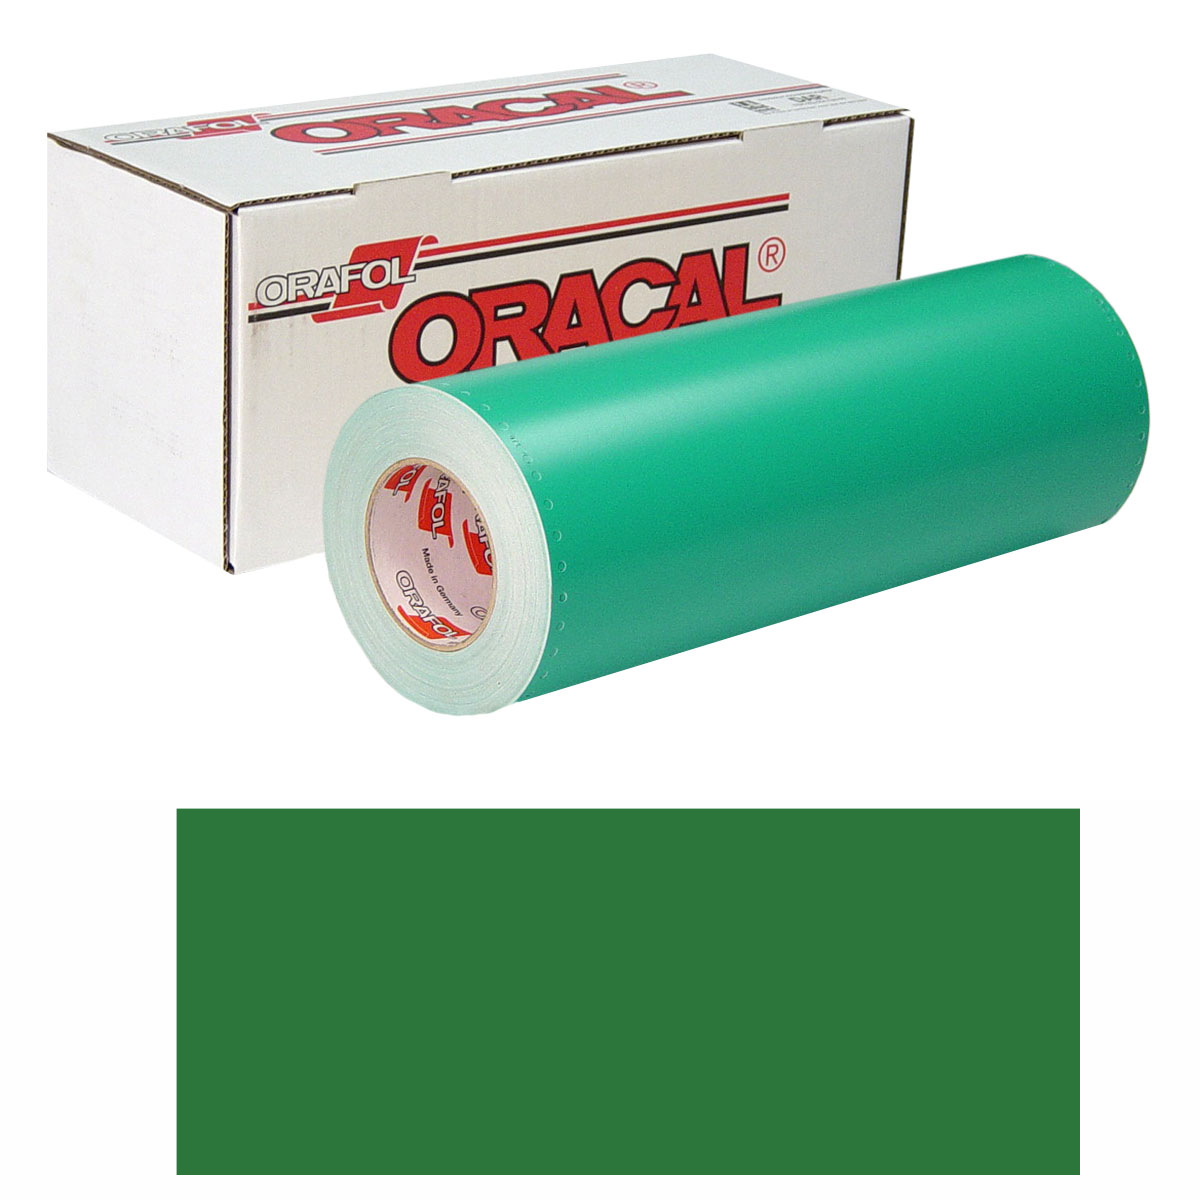 ORACAL 8500 15In X 10Yd 614 Reed Green